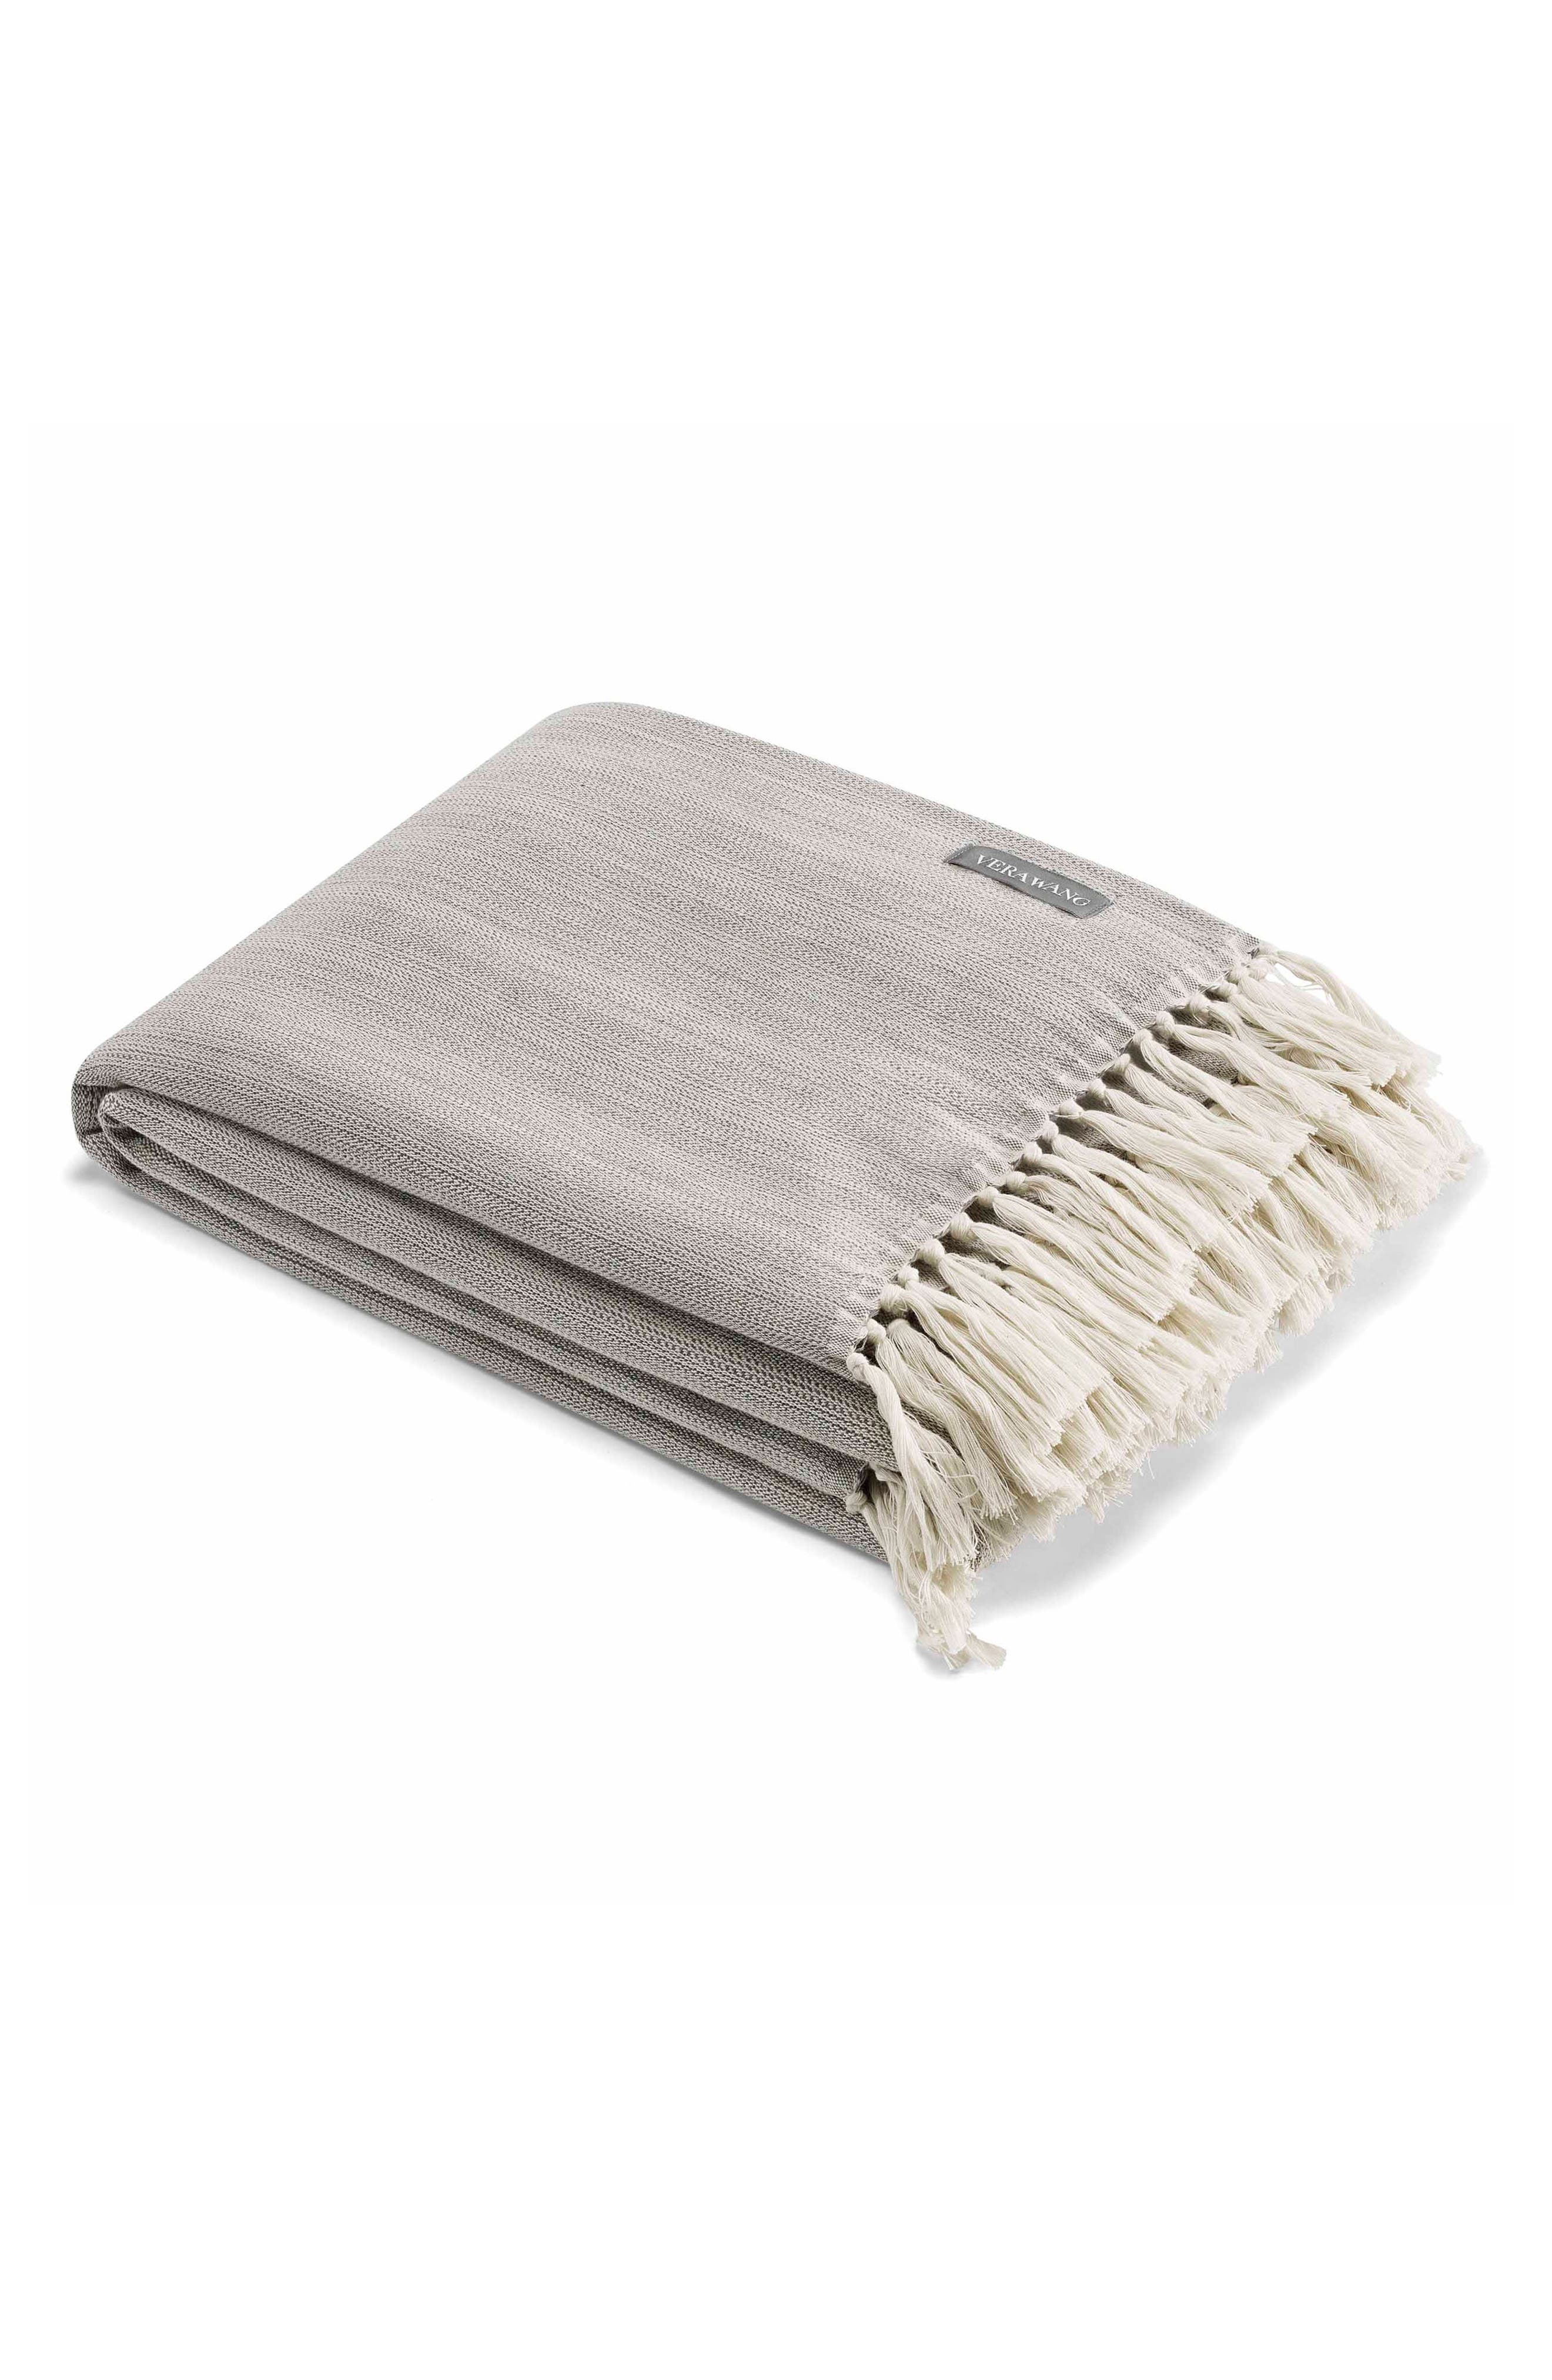 Fringe Cotton Twill Throw,                             Main thumbnail 1, color,                             CHARCOAL